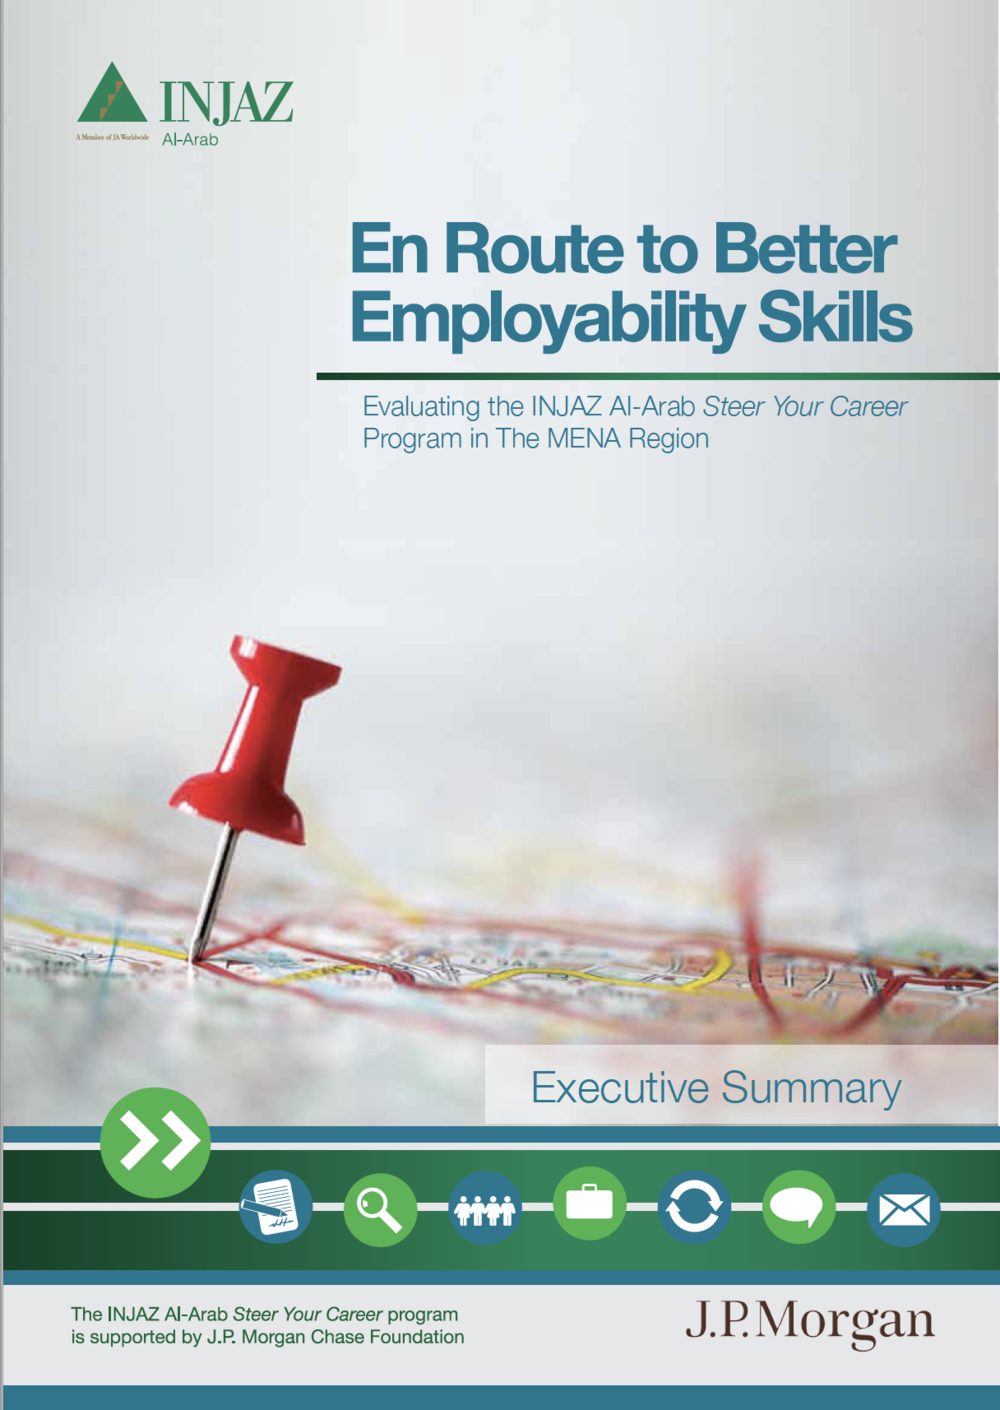 03-En Route to Better Employability Skills-INJAZ-cover.png